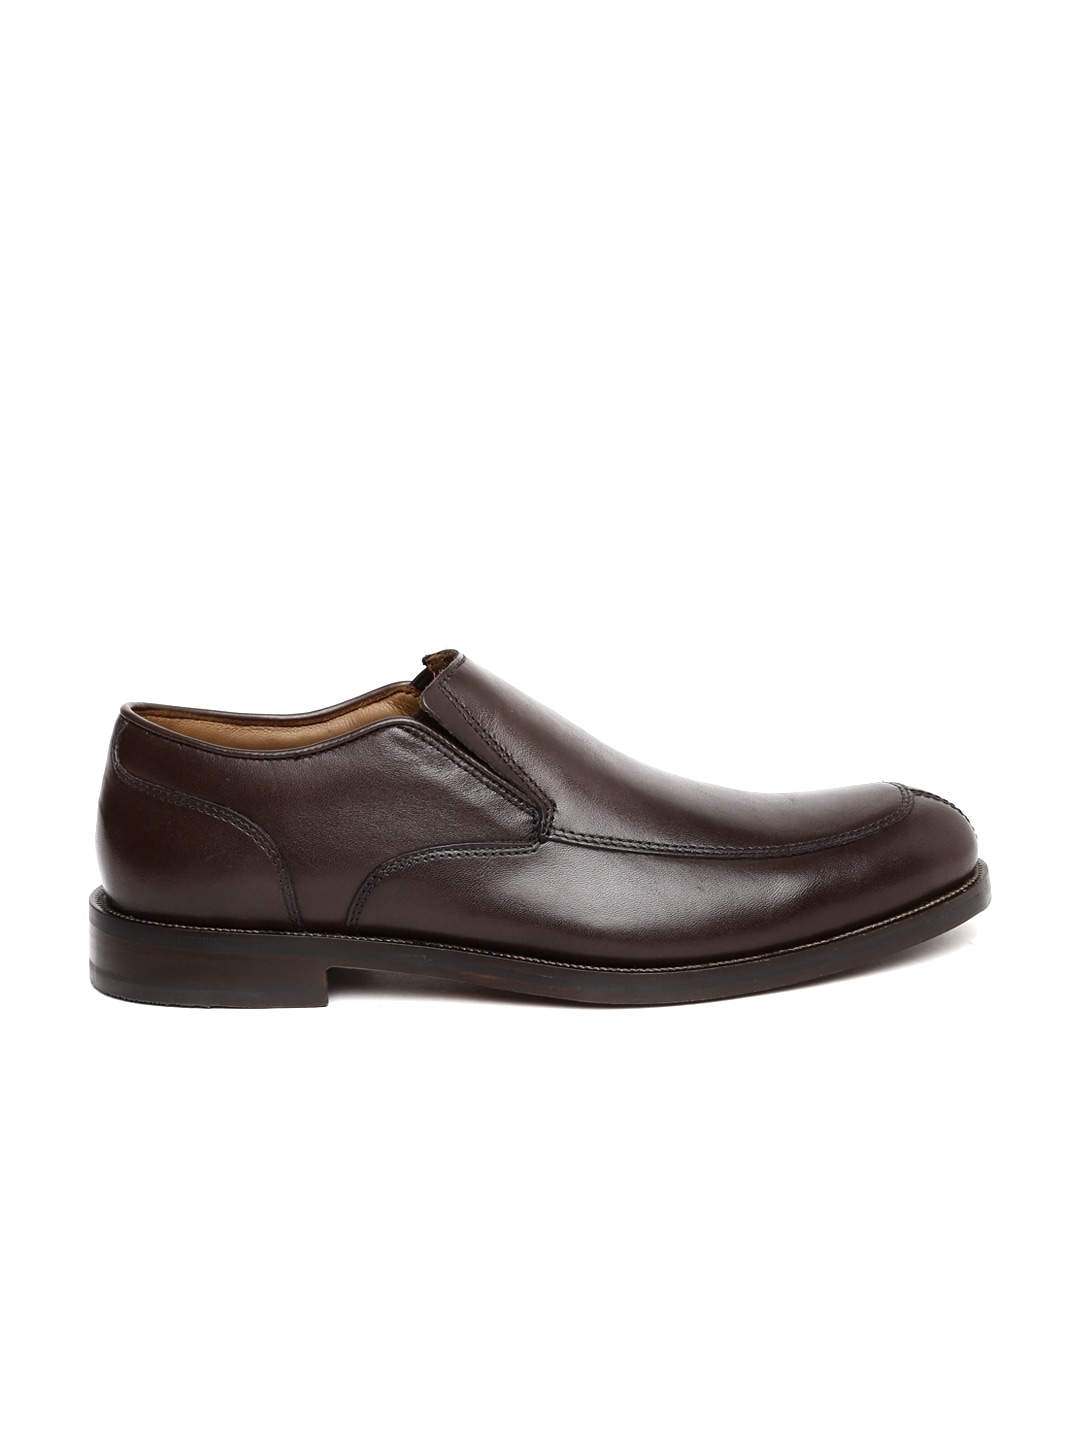 282a393612fa CLARKS - Exclusive Clarks Shoes Online Store in India - Myntra